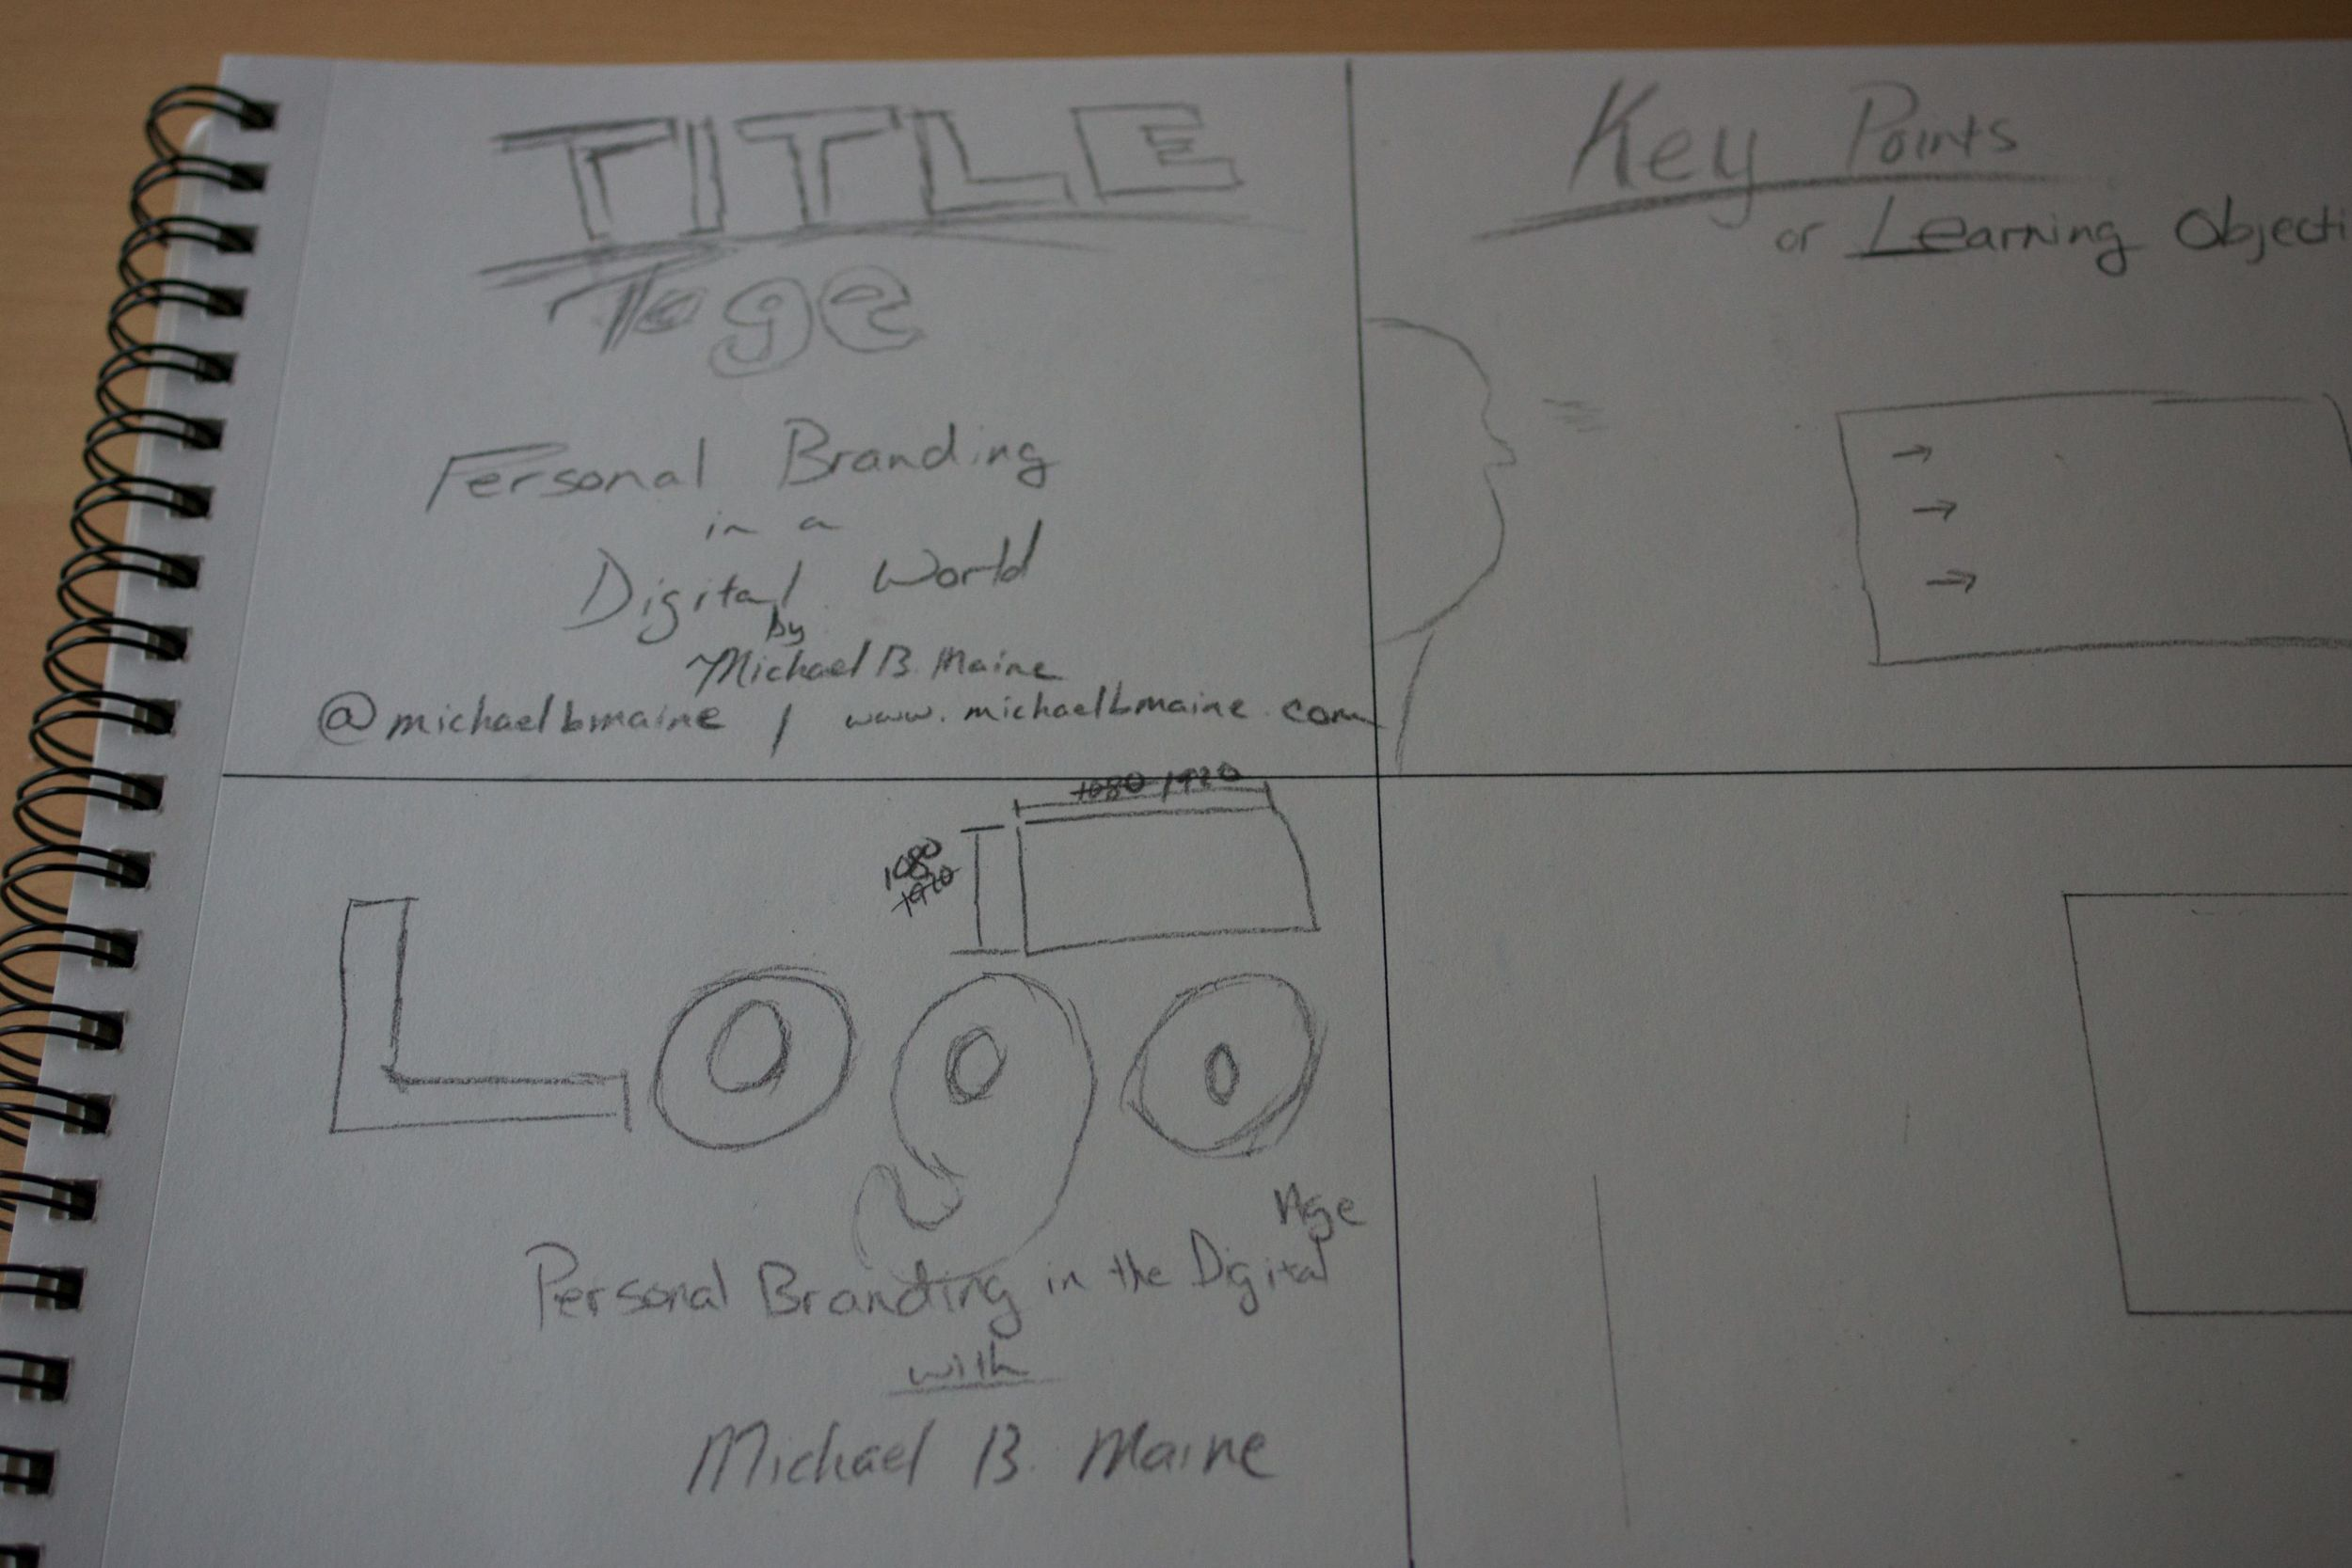 Sketching out a title slide for an upcoming presentation